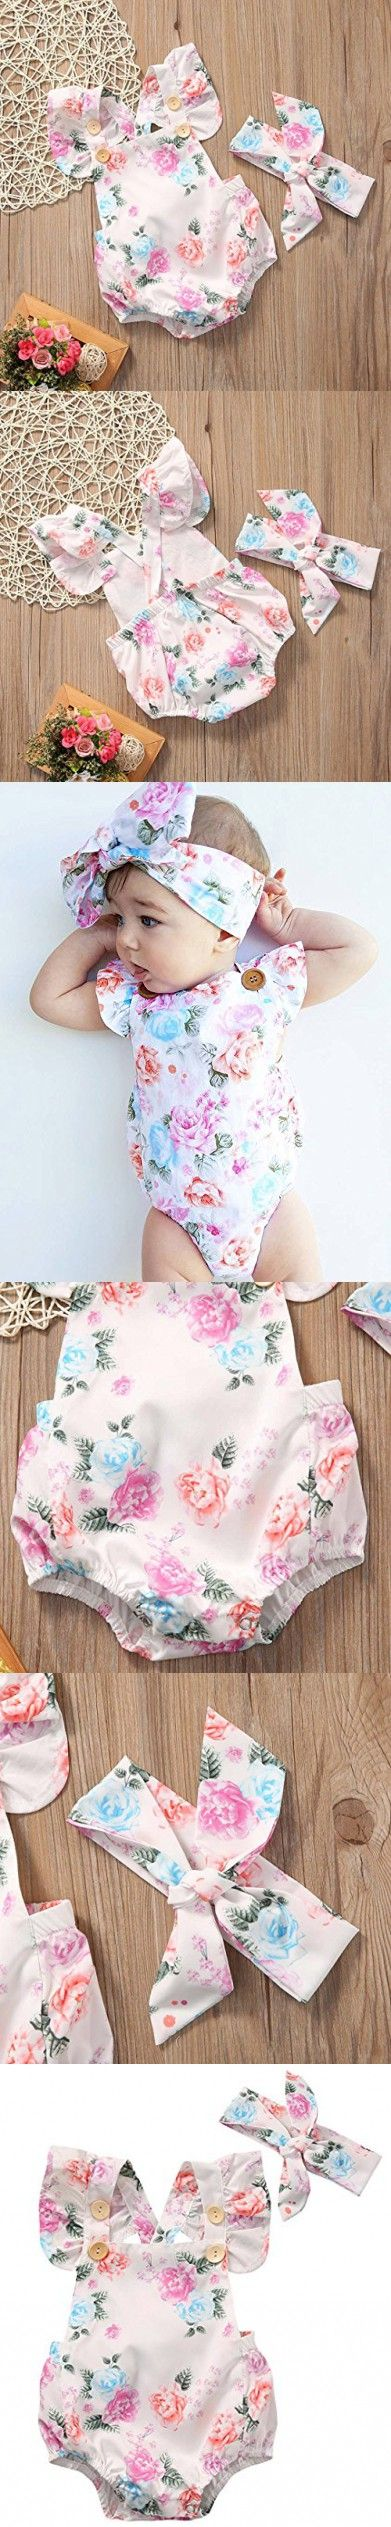 Newborn Baby Clothe Lace Floral Romper Backless Bodysuit Photo Prop Outfits TK